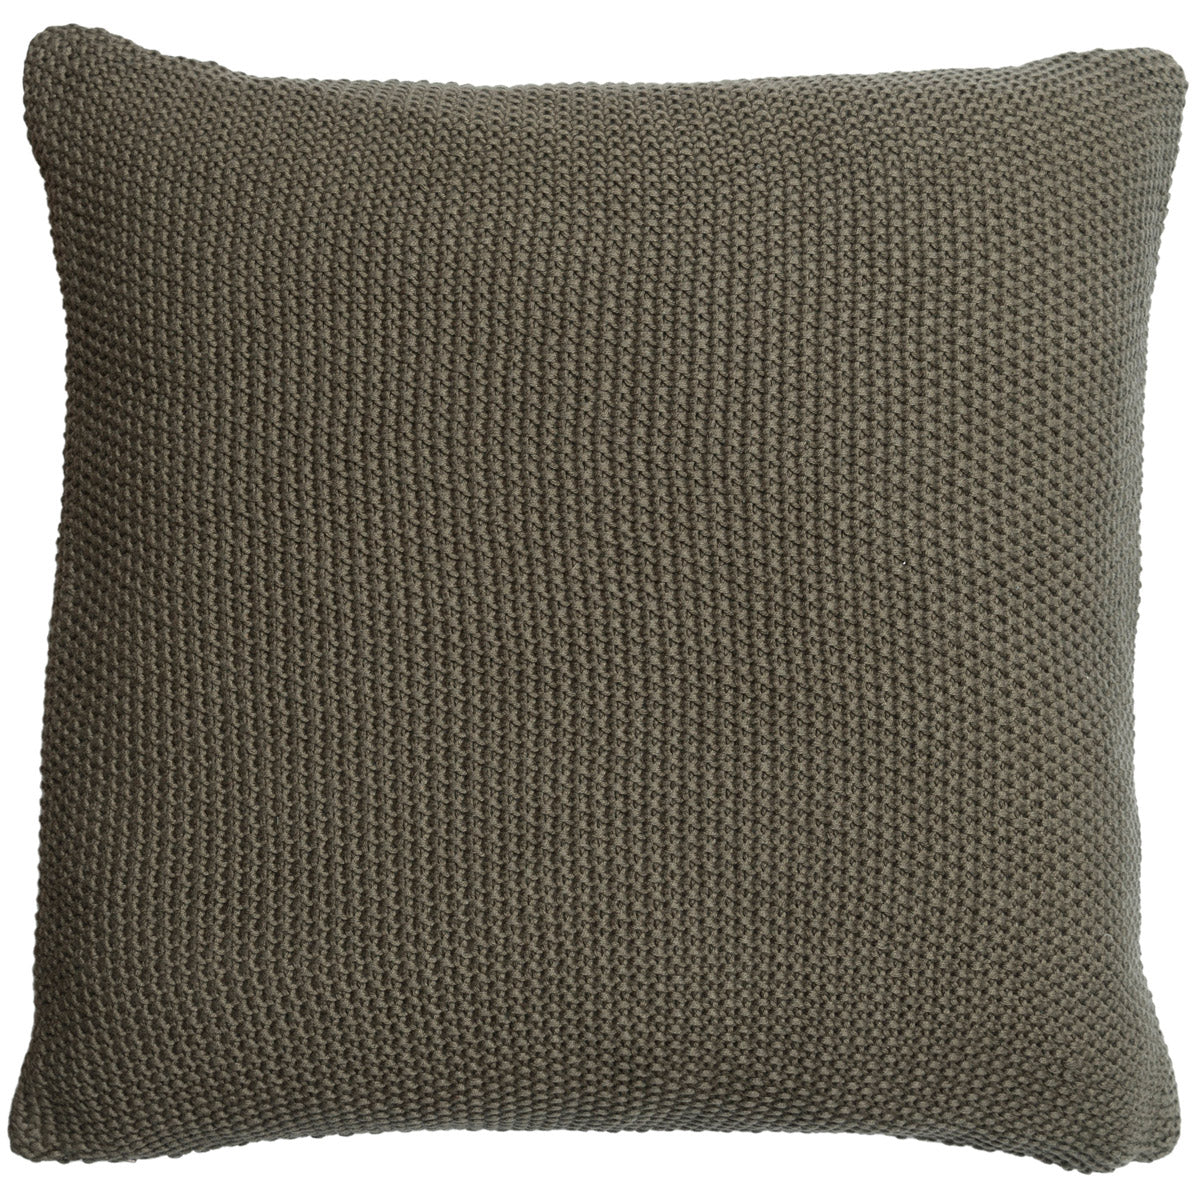 Sage Green Knitted Cushion